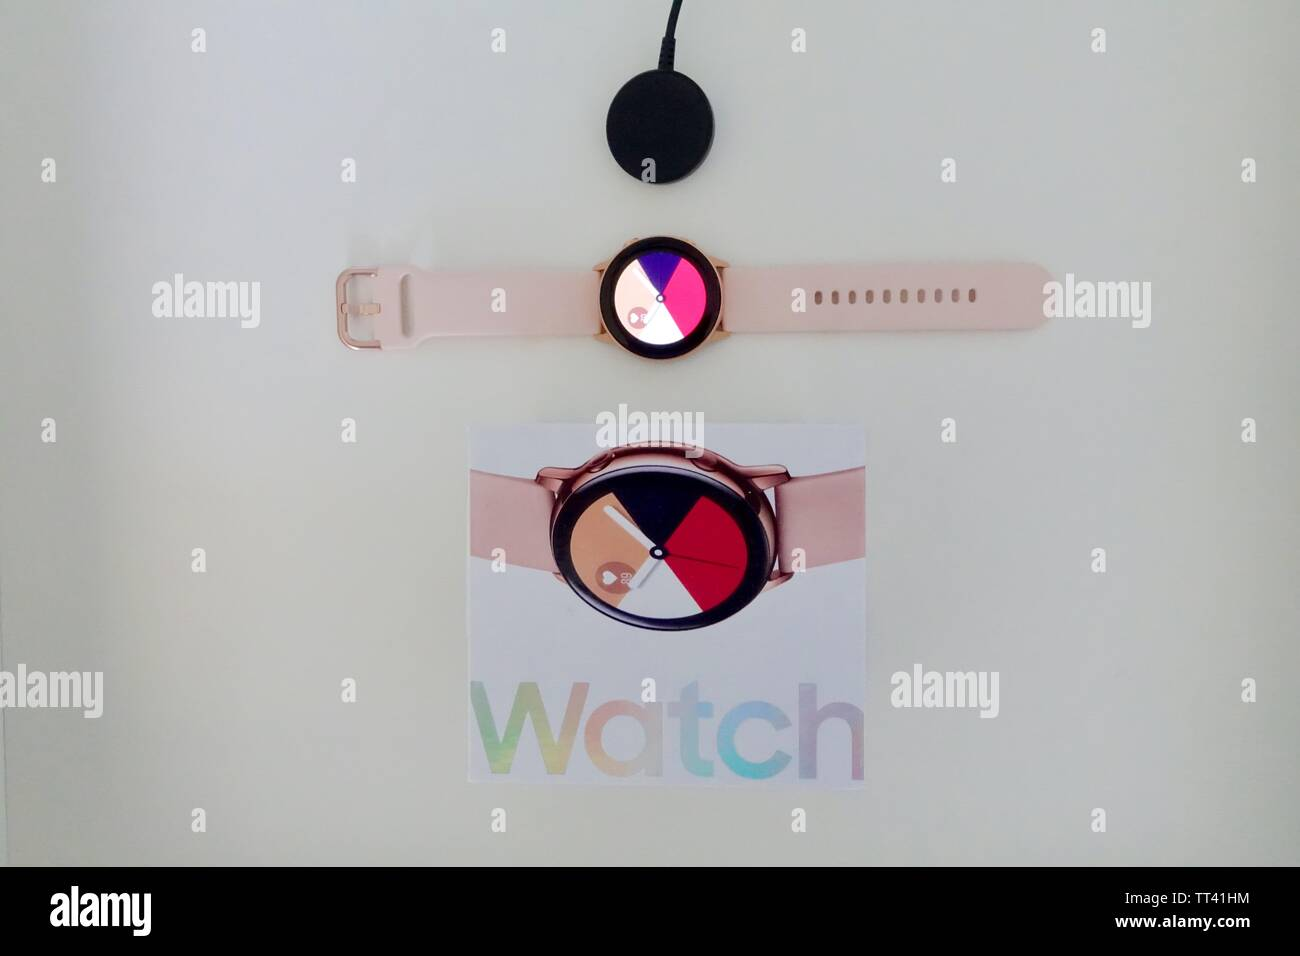 Orlando, FL/USA- 6/7/19: A rose gold Samsung Galaxy Active watch open with a standard watch face, box and charging disk. - Stock Image